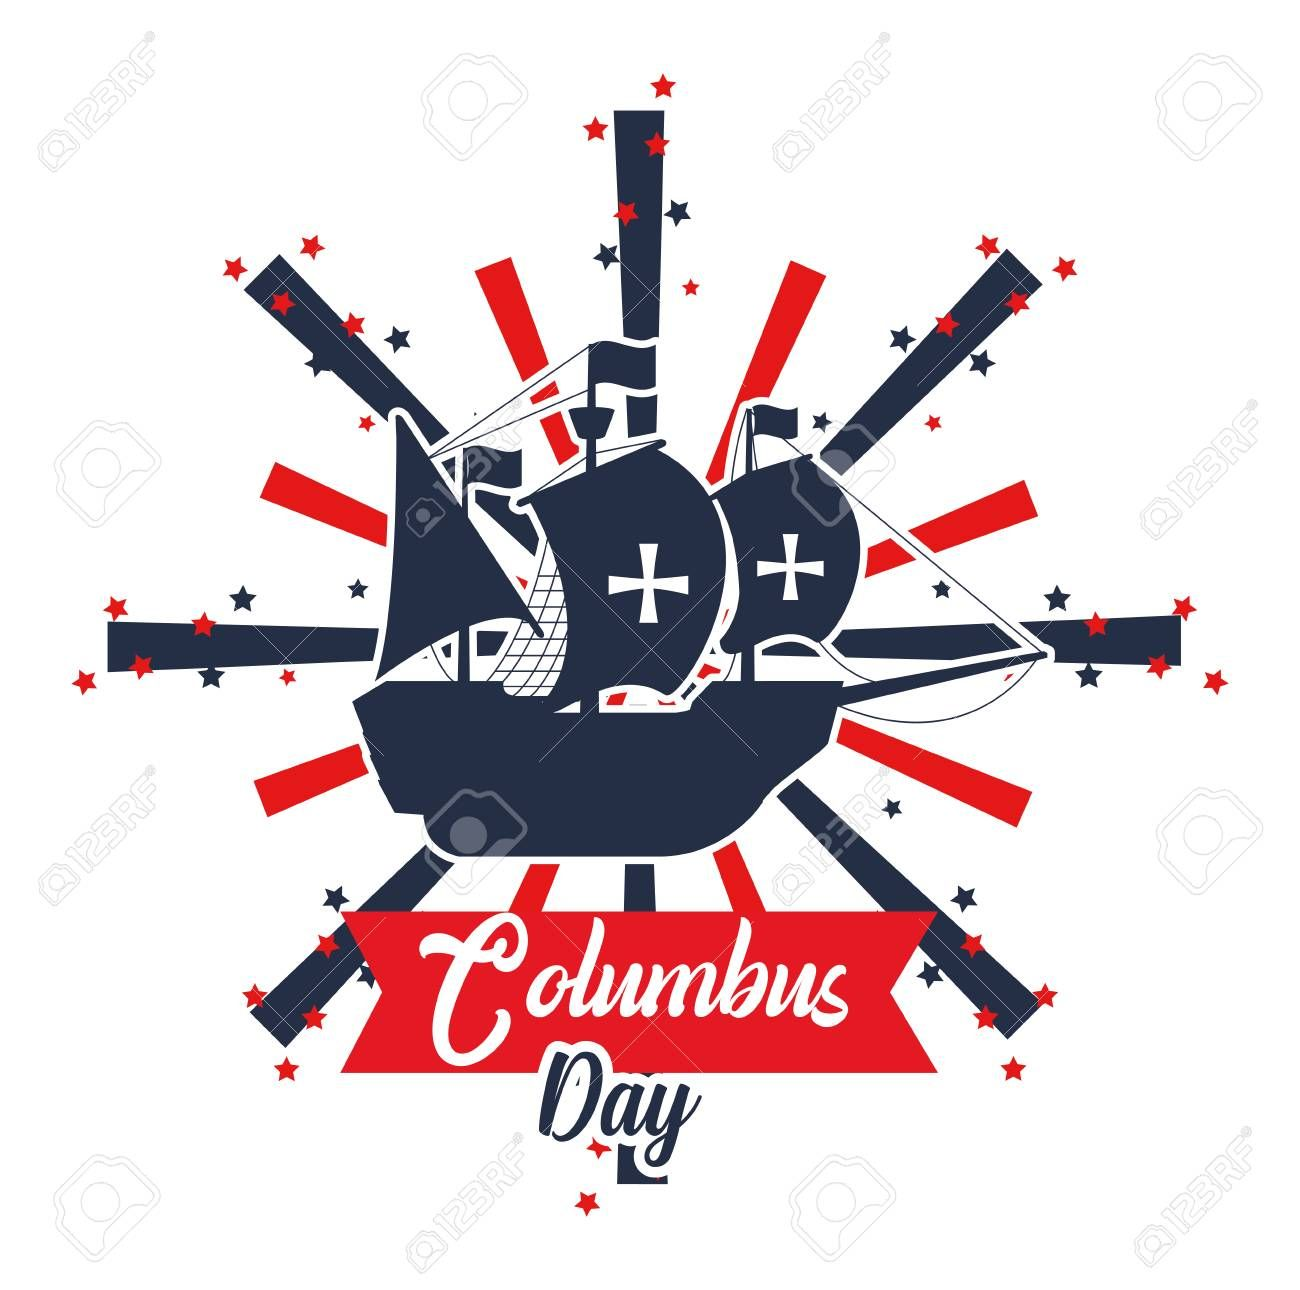 Happy Columbus Day Card With Elements And Cartoons Vector Illustration Graphic Dsign Aff Card Ele Happy Columbus Day Cartoons Vector Vector Illustration